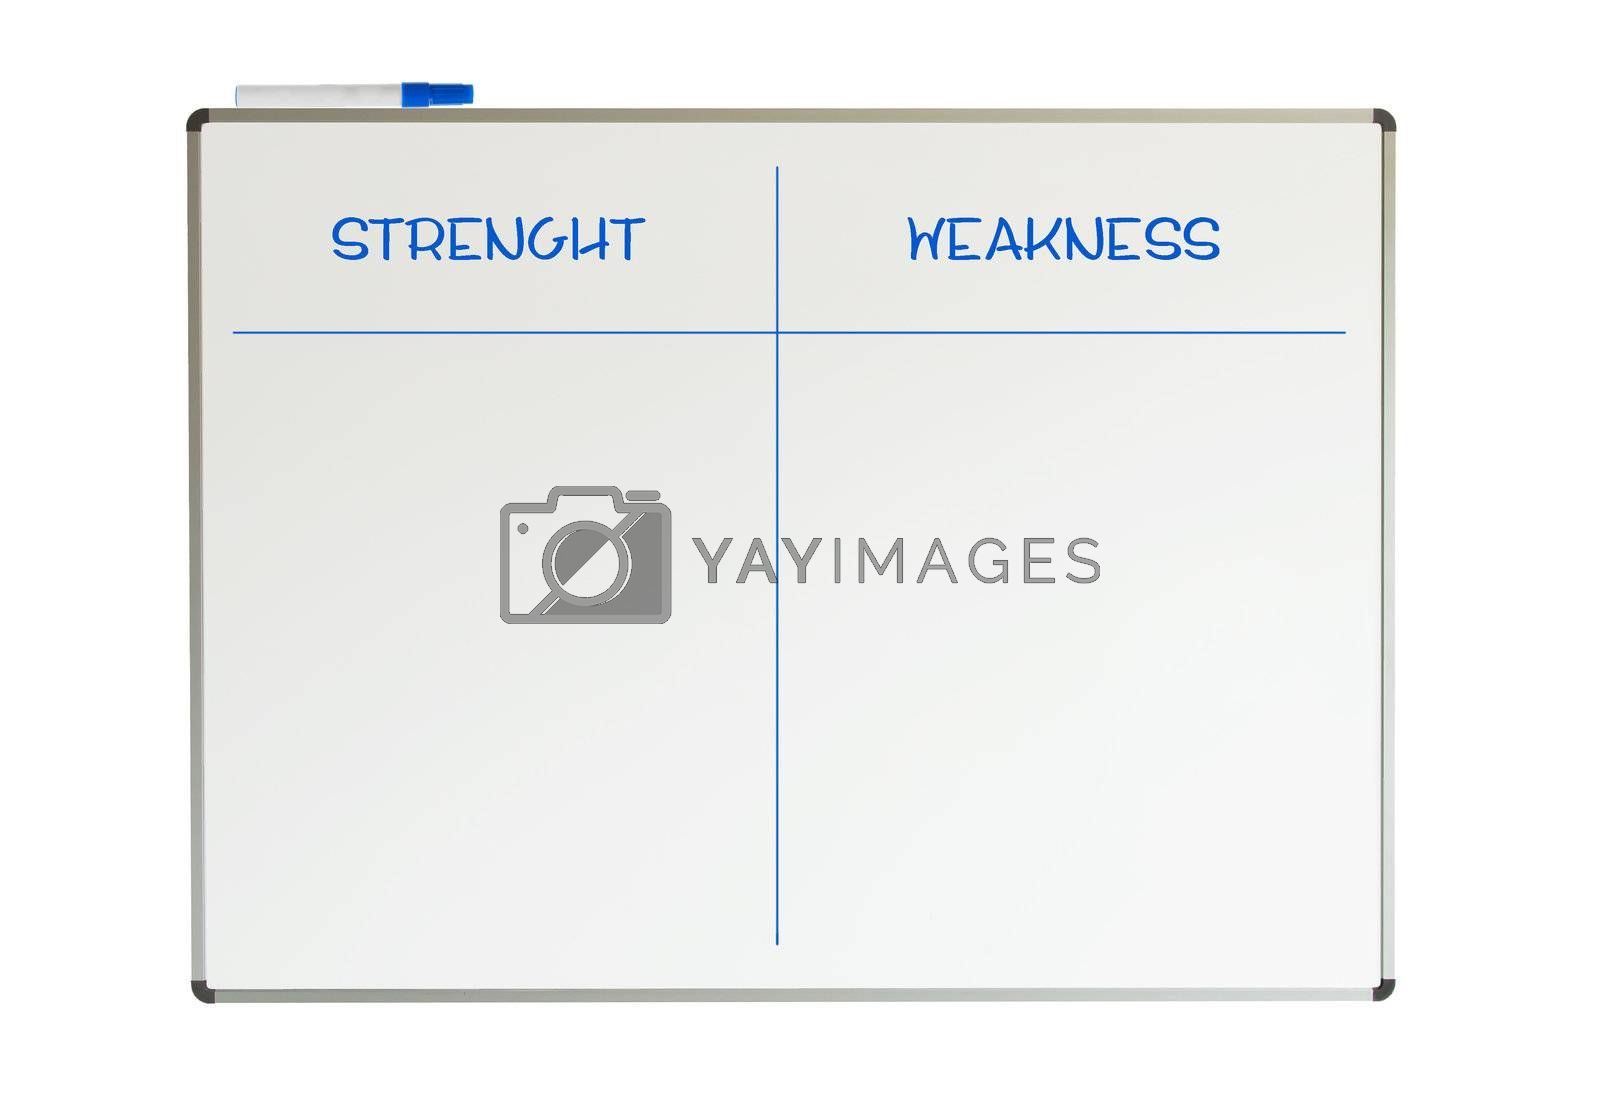 Strength and weakness on a whiteboard, isolatedon white